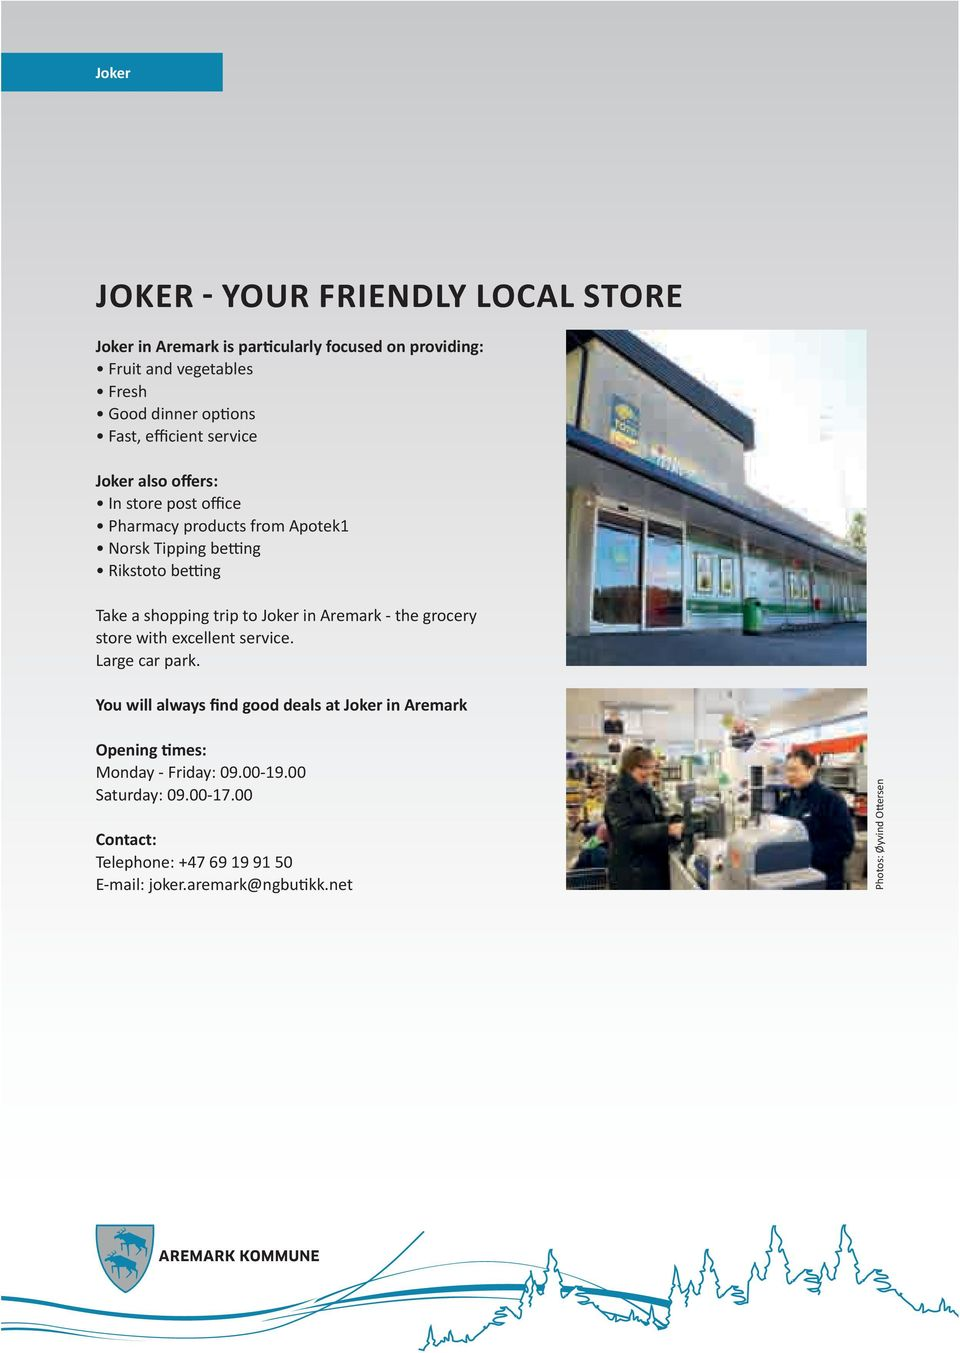 trip to Joker in Aremark - the grocery store with excellent service. Large car park.